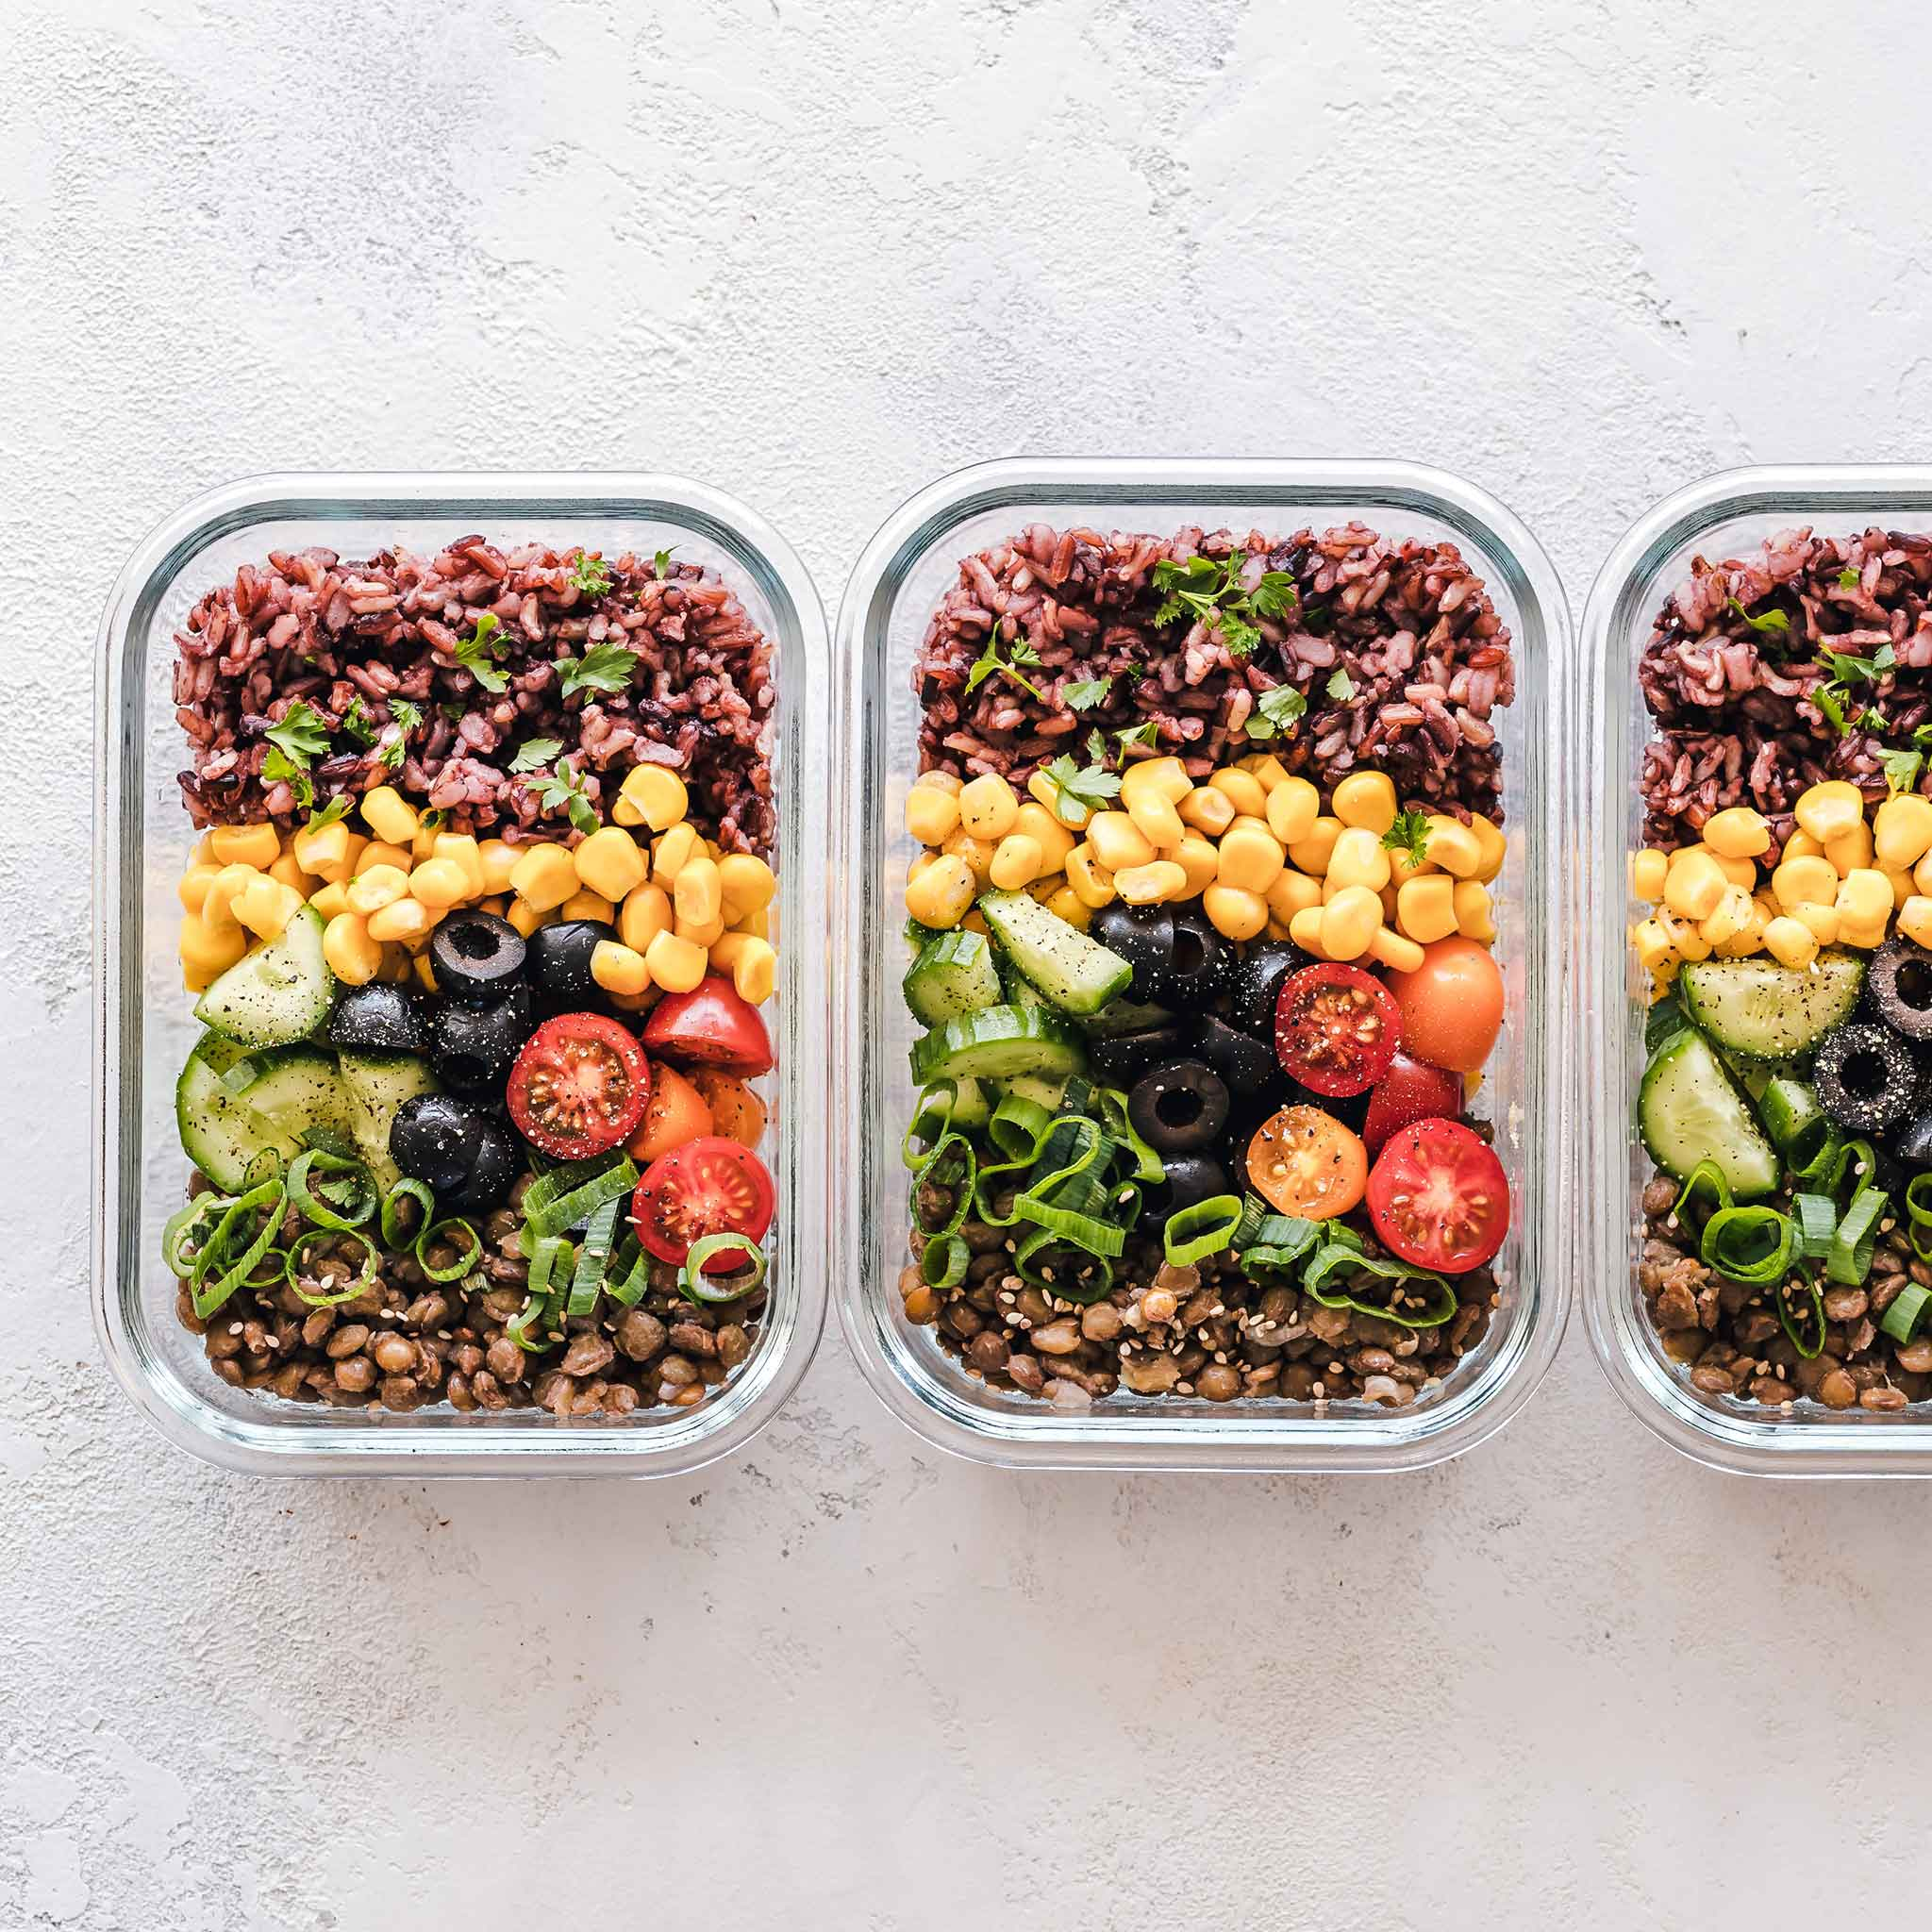 Packed lunch recipes for families